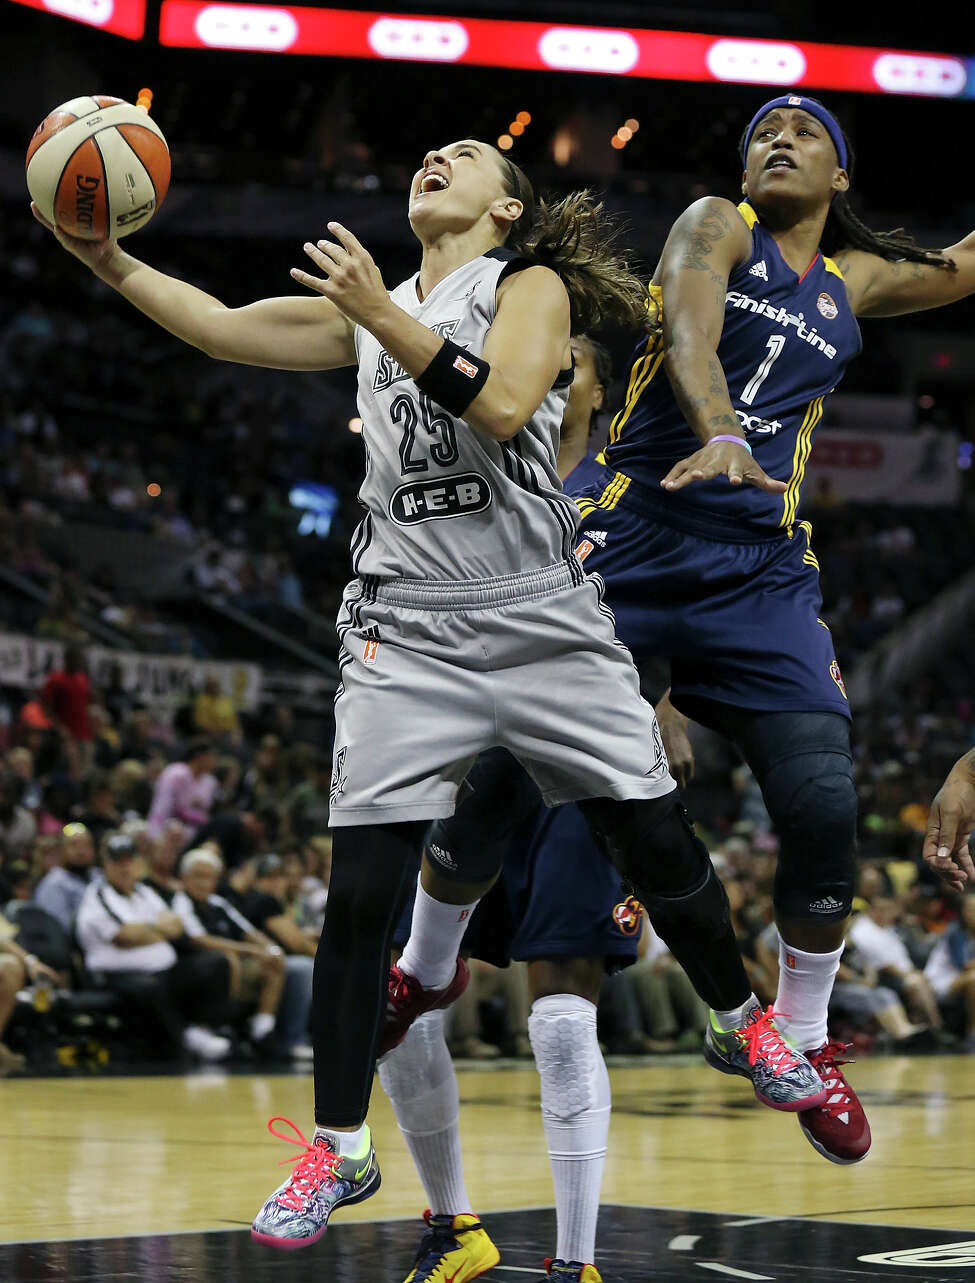 San Antonio Stars' Becky Hammon is fouled by Indiana Fever's Shavonte Zellous during first half action Saturday July 26, 2014 at the AT&T Center.